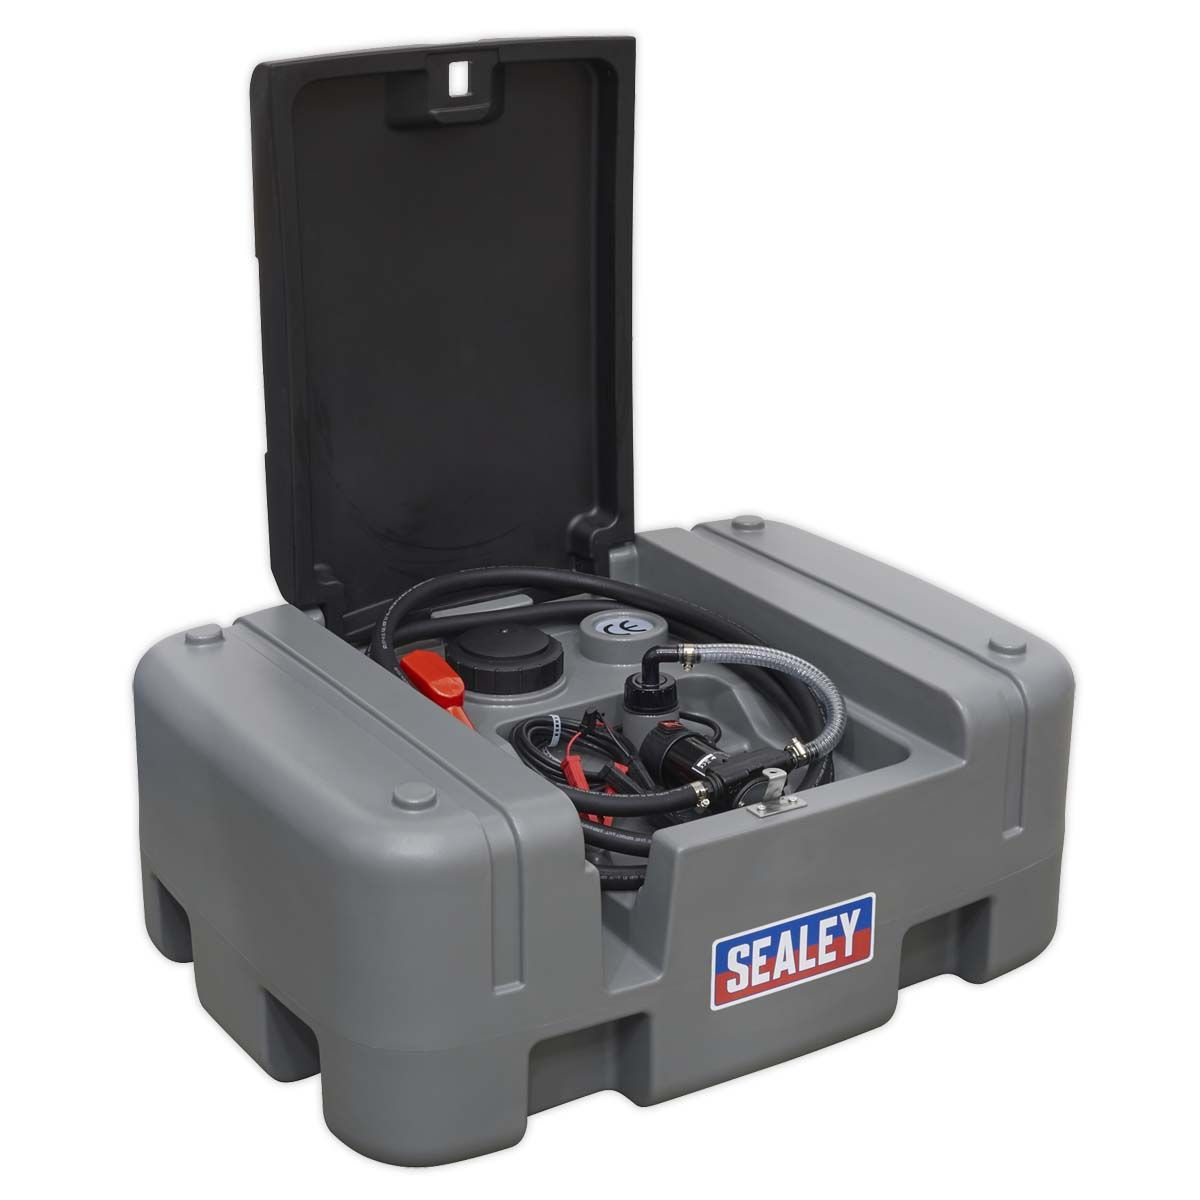 Sealey Portable Diesel Tank 200L 12V